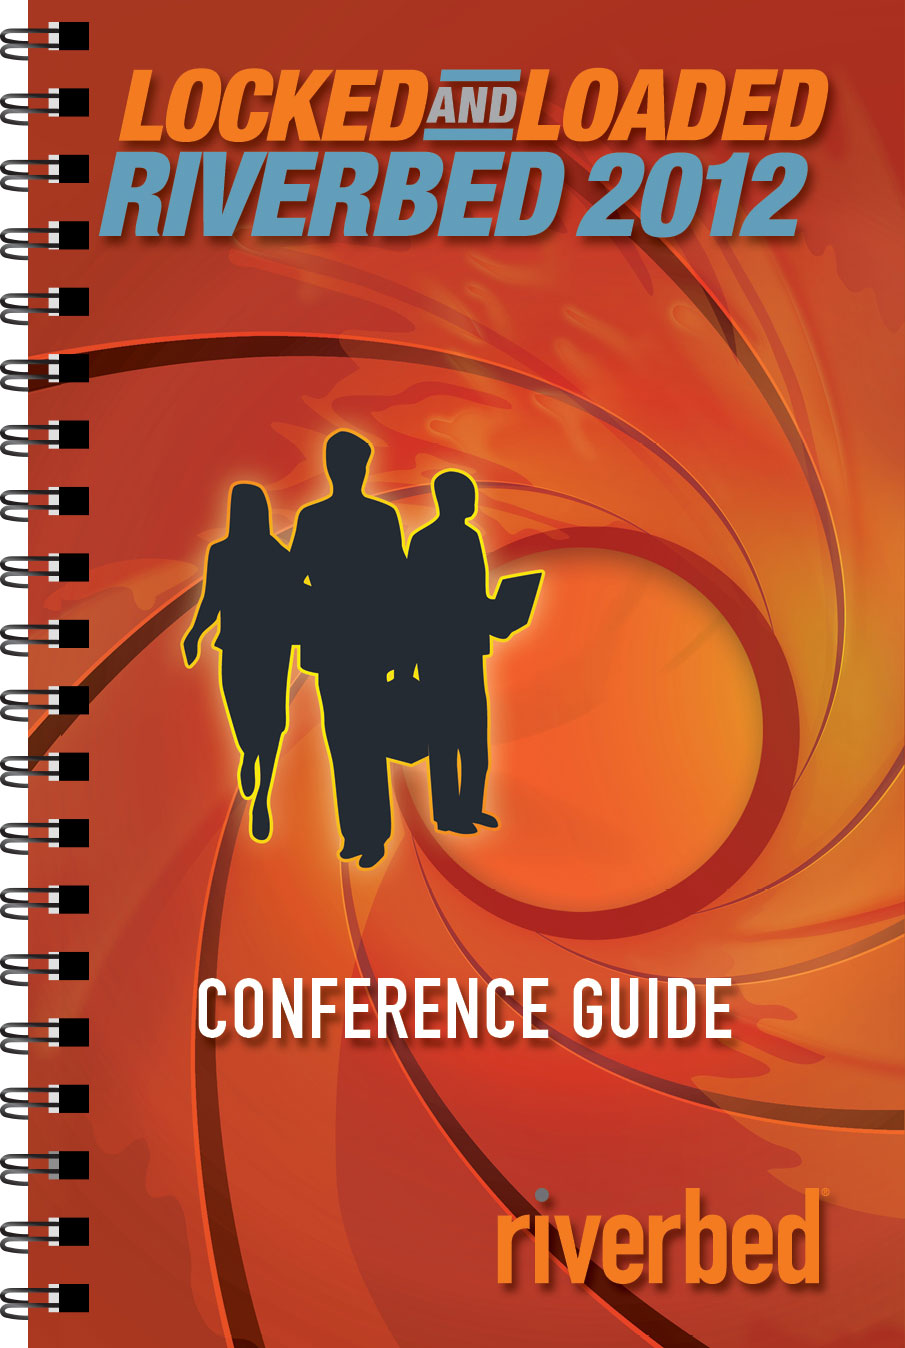 Riverbed SKO Conference Guide